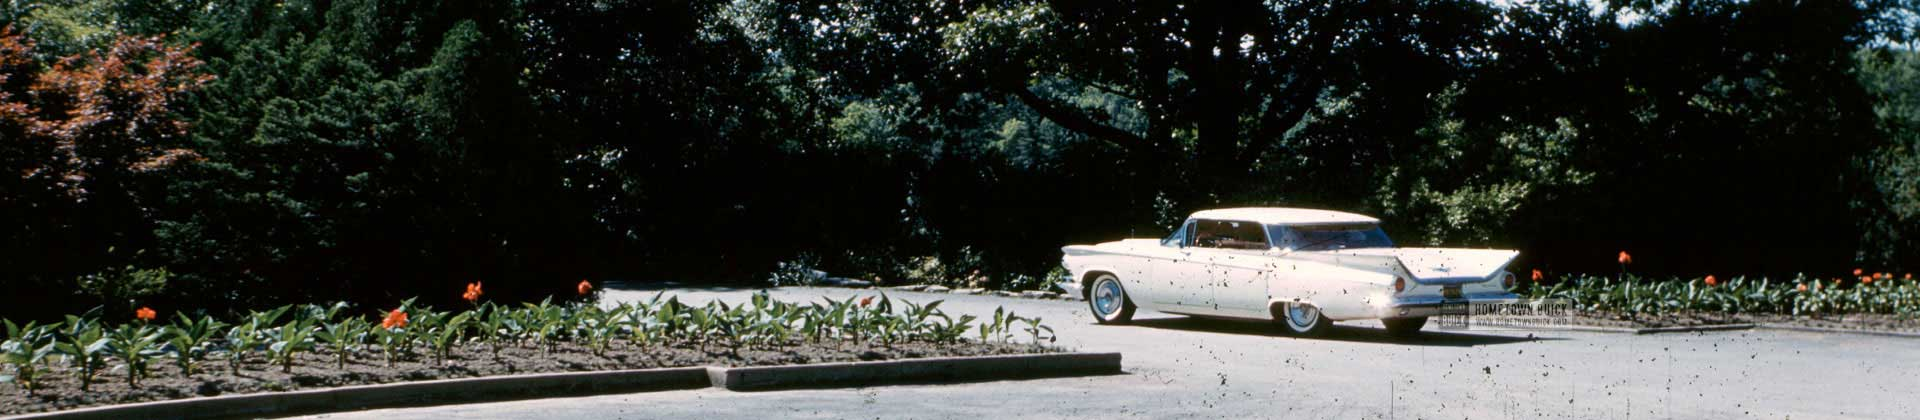 1959 Buick Banner